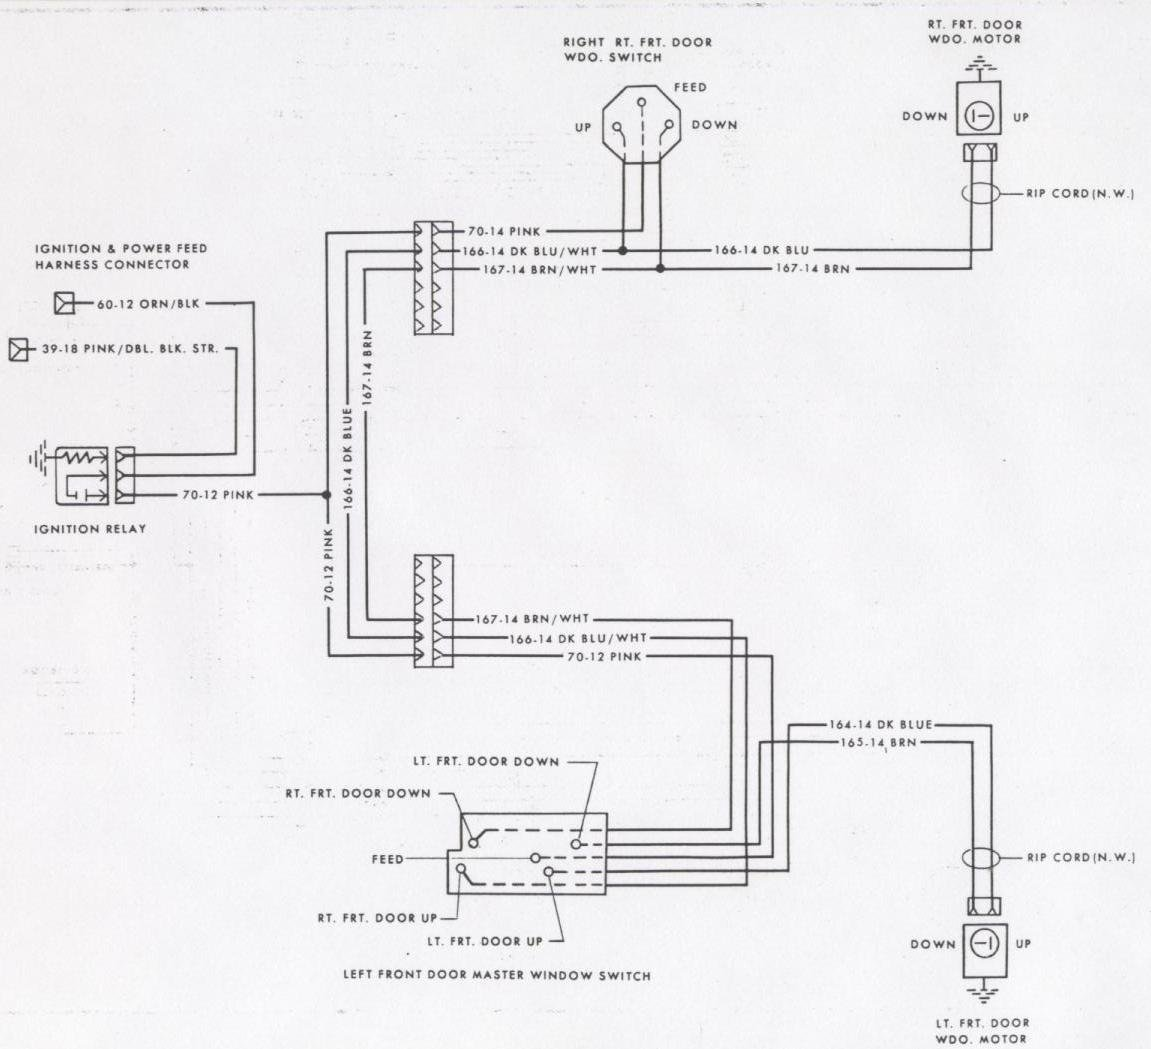 Wiring Diagram For 79 Camaro Power Windows